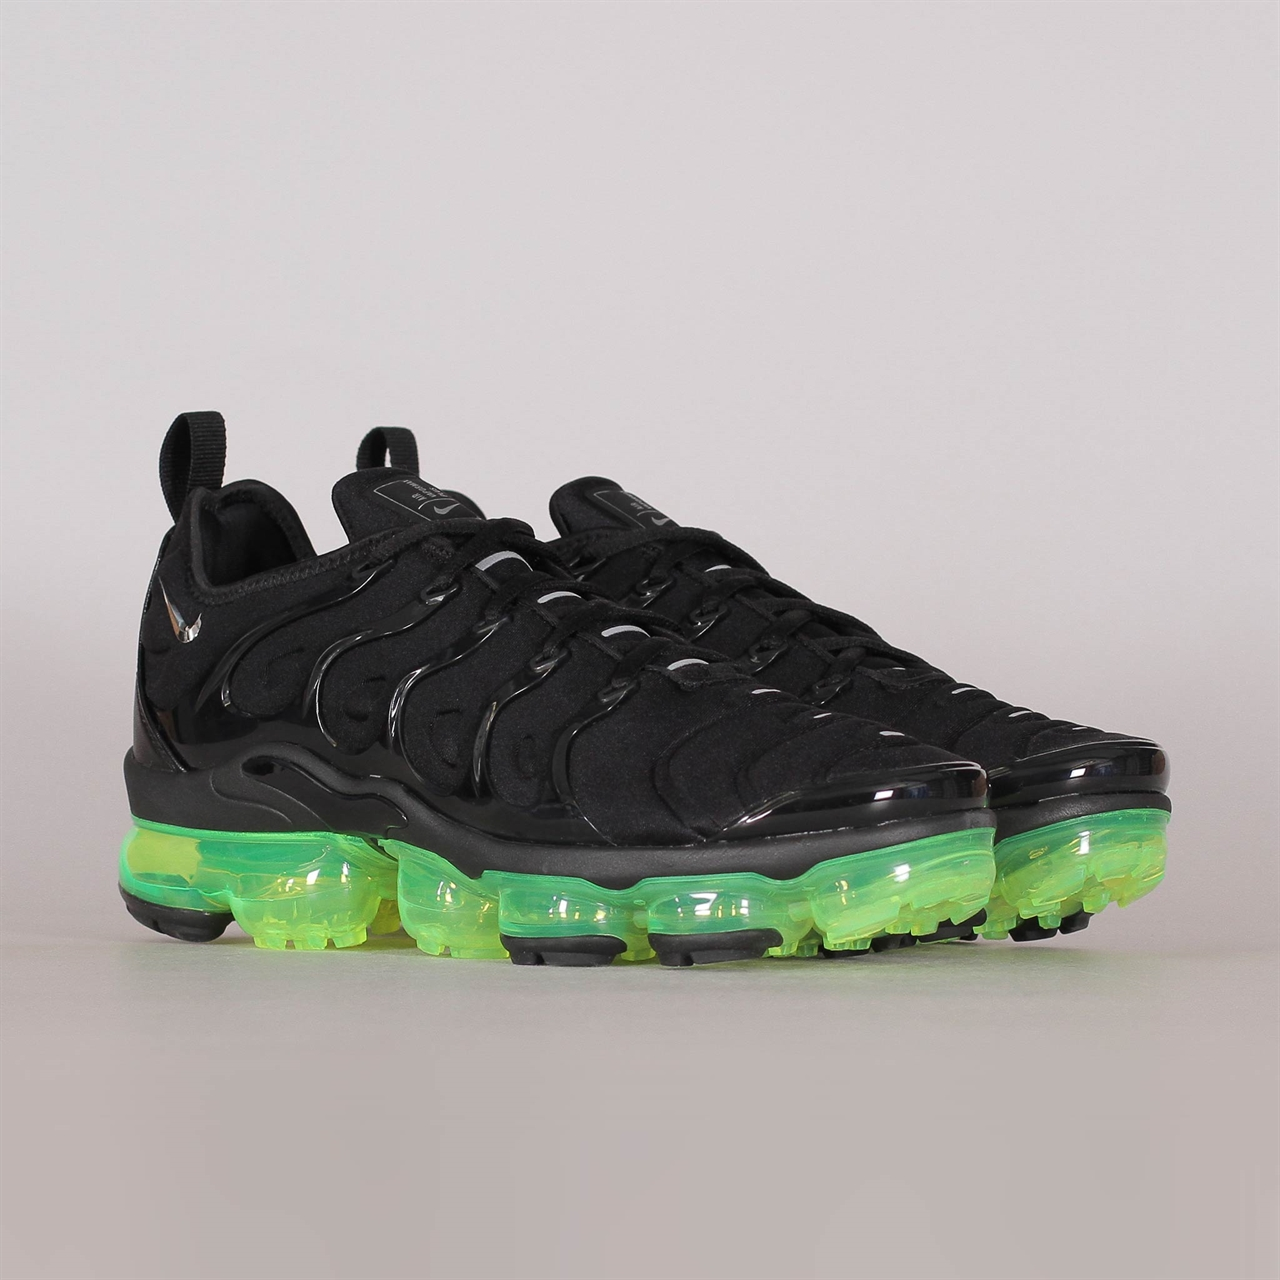 74f50a795f10a Shelta - Nike Air Vapormax Plus (924453-015)